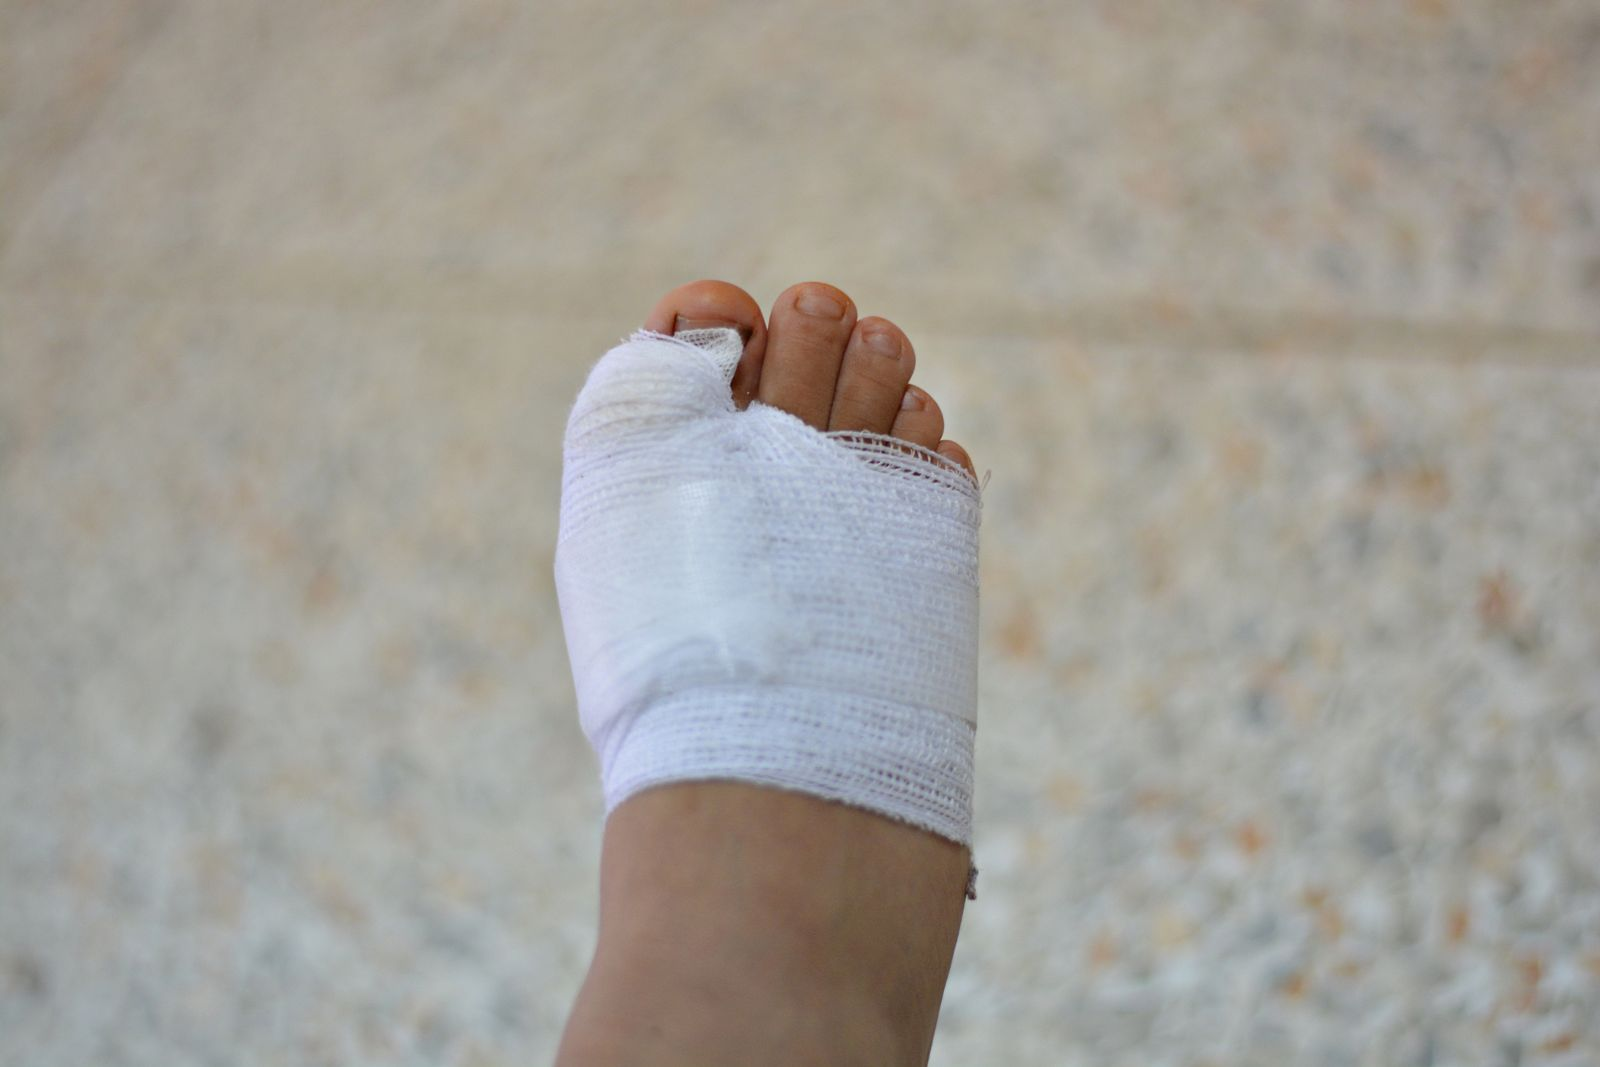 If you choose bone spur surgery, we'll have to wrap your foot with a surgical dressing